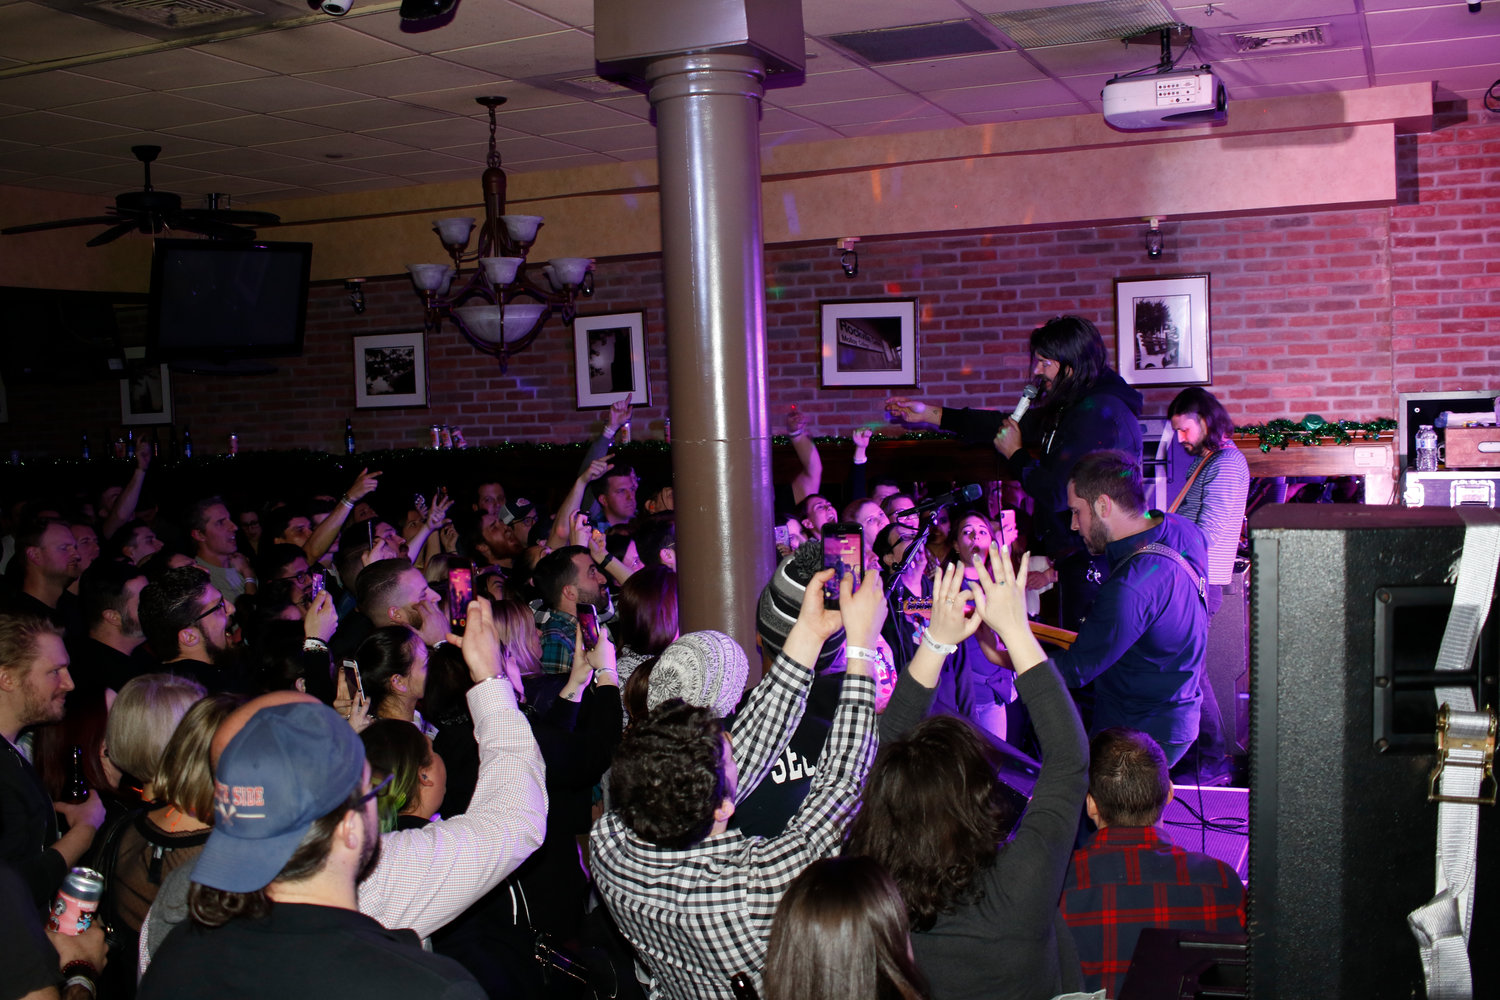 Taking Back Sunday played a sold-out show at R.J. Daniels in Rockville Centre on Monday.